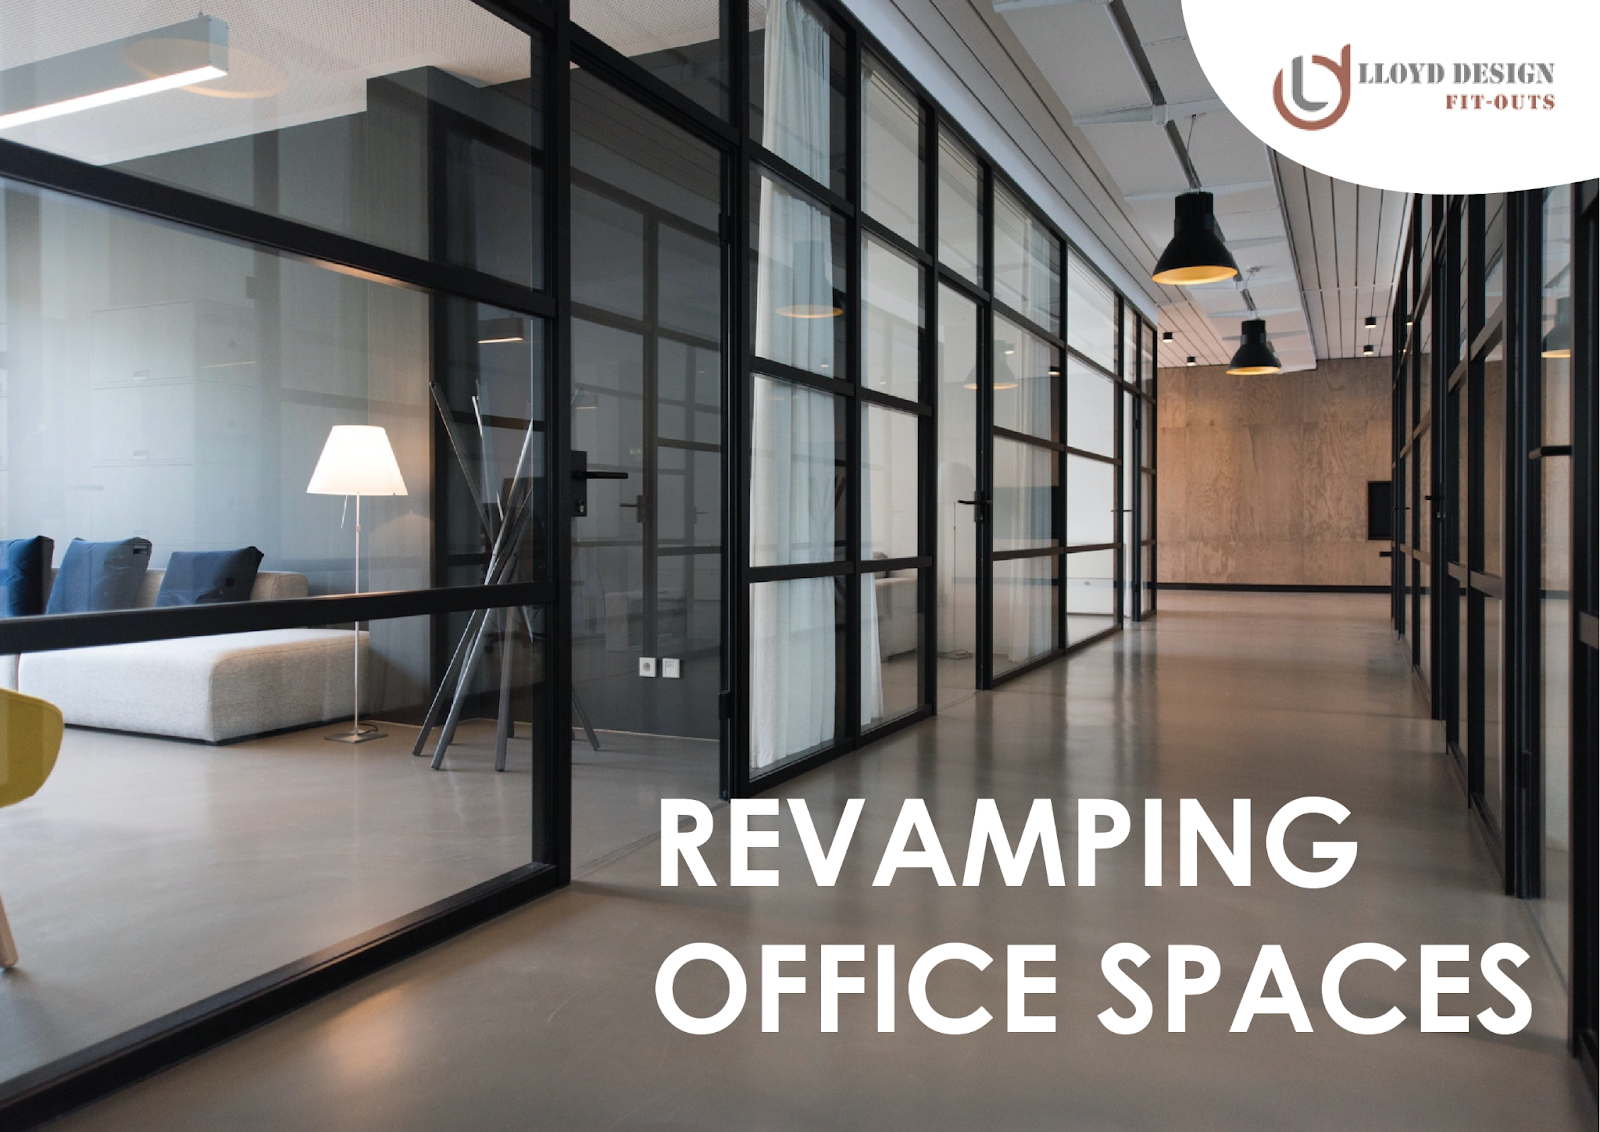 Revamping Office Space of Interior fit-out companies in UAE - 3 reasons why your office space needs a revamp